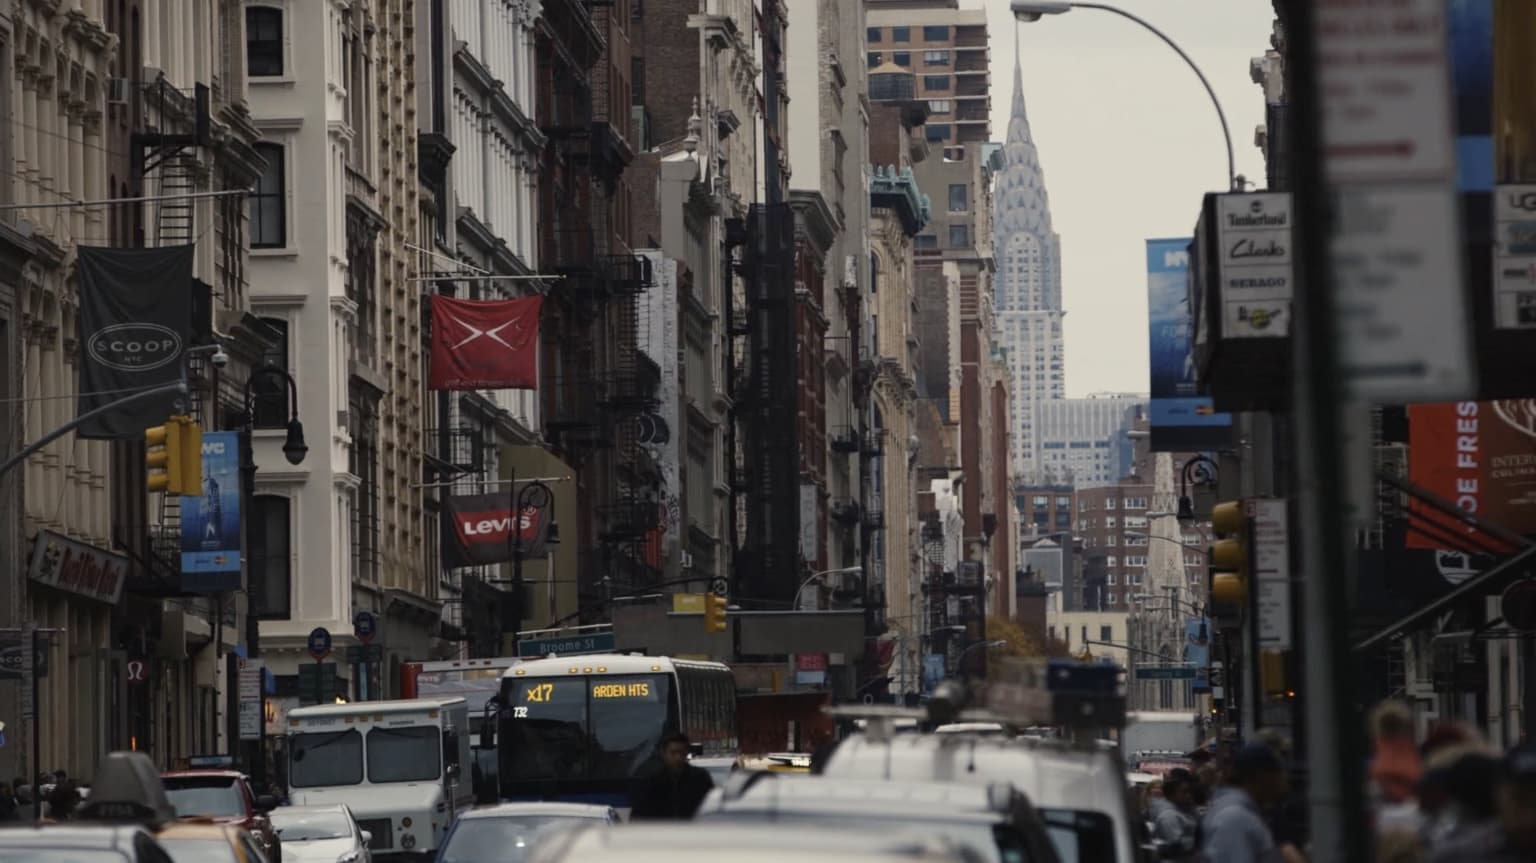 Masters of Code: NYC (EXCERPTS)